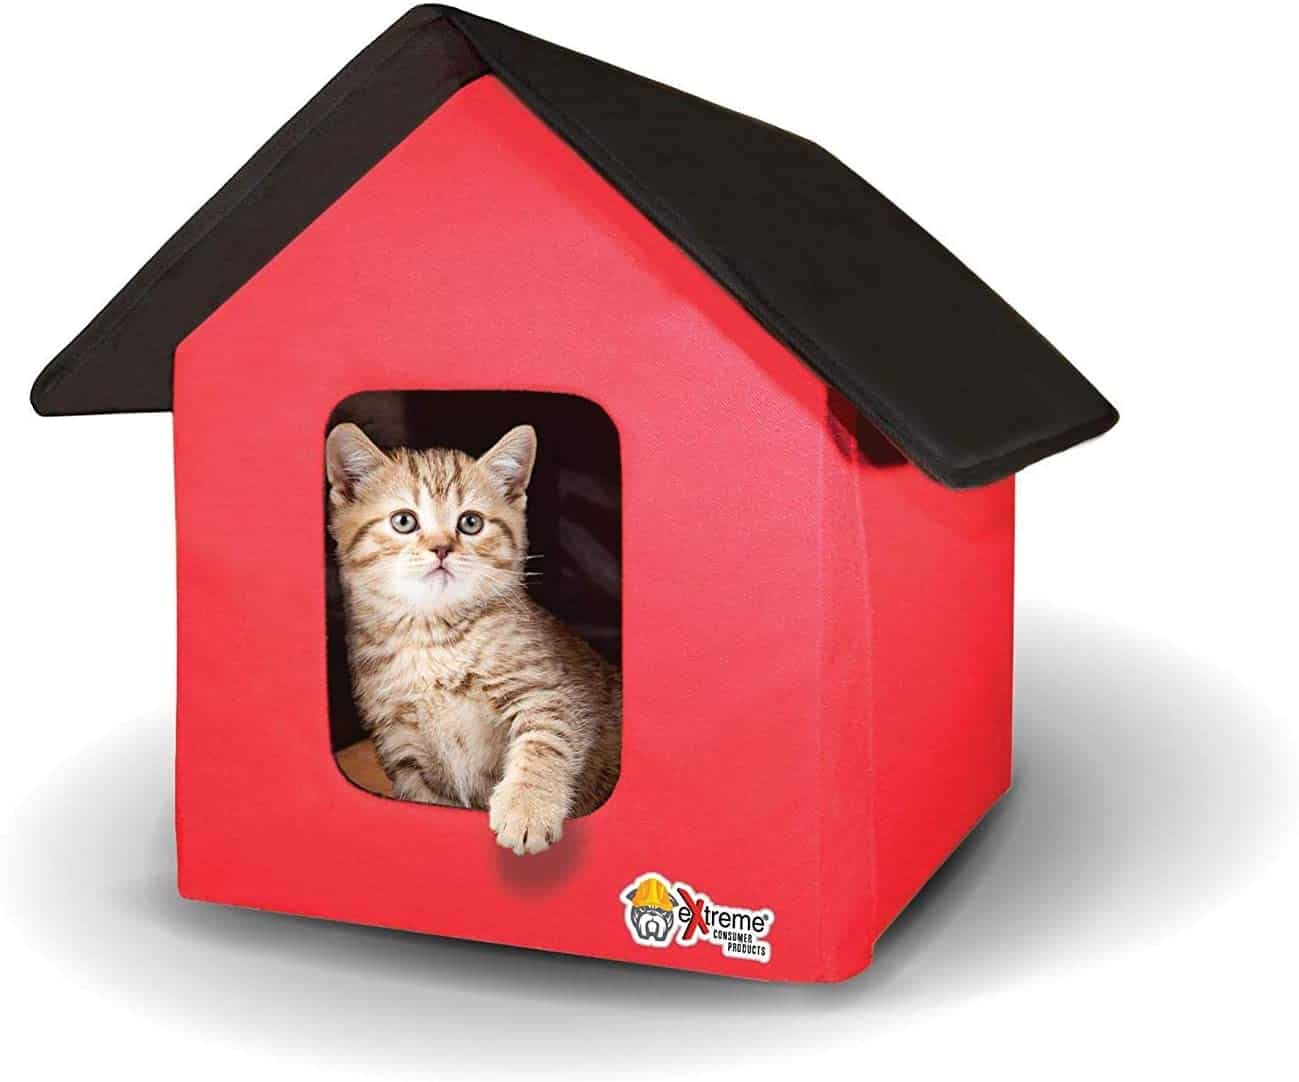 Best Outdoor Cat House for 2020 Plus Reviews of Other Top Picks 27